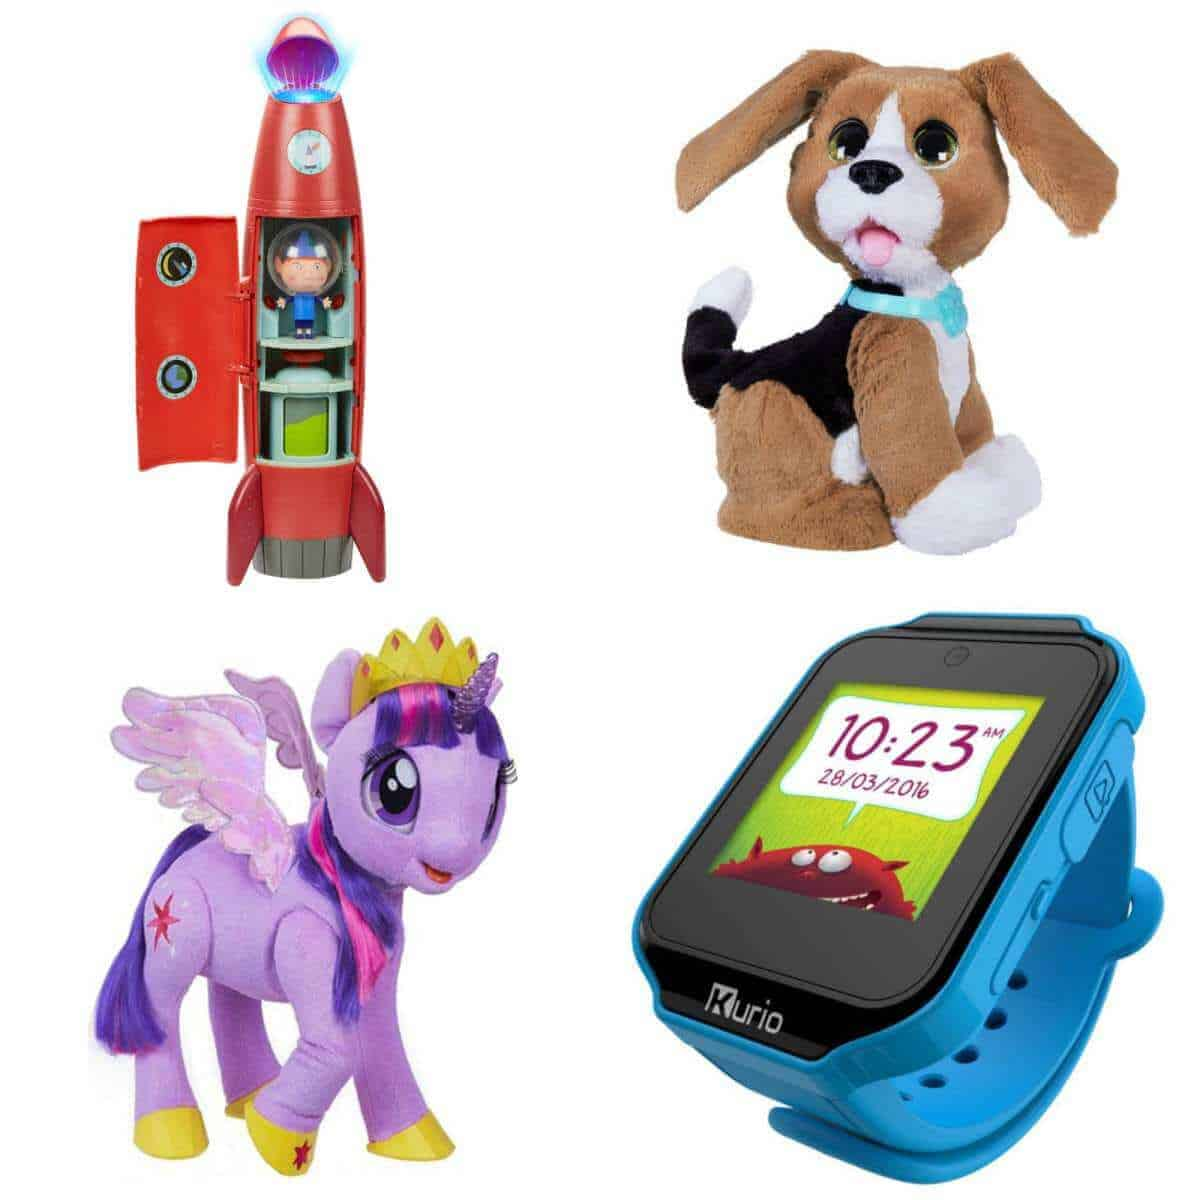 The Best Christmas Gift Guide For Kids